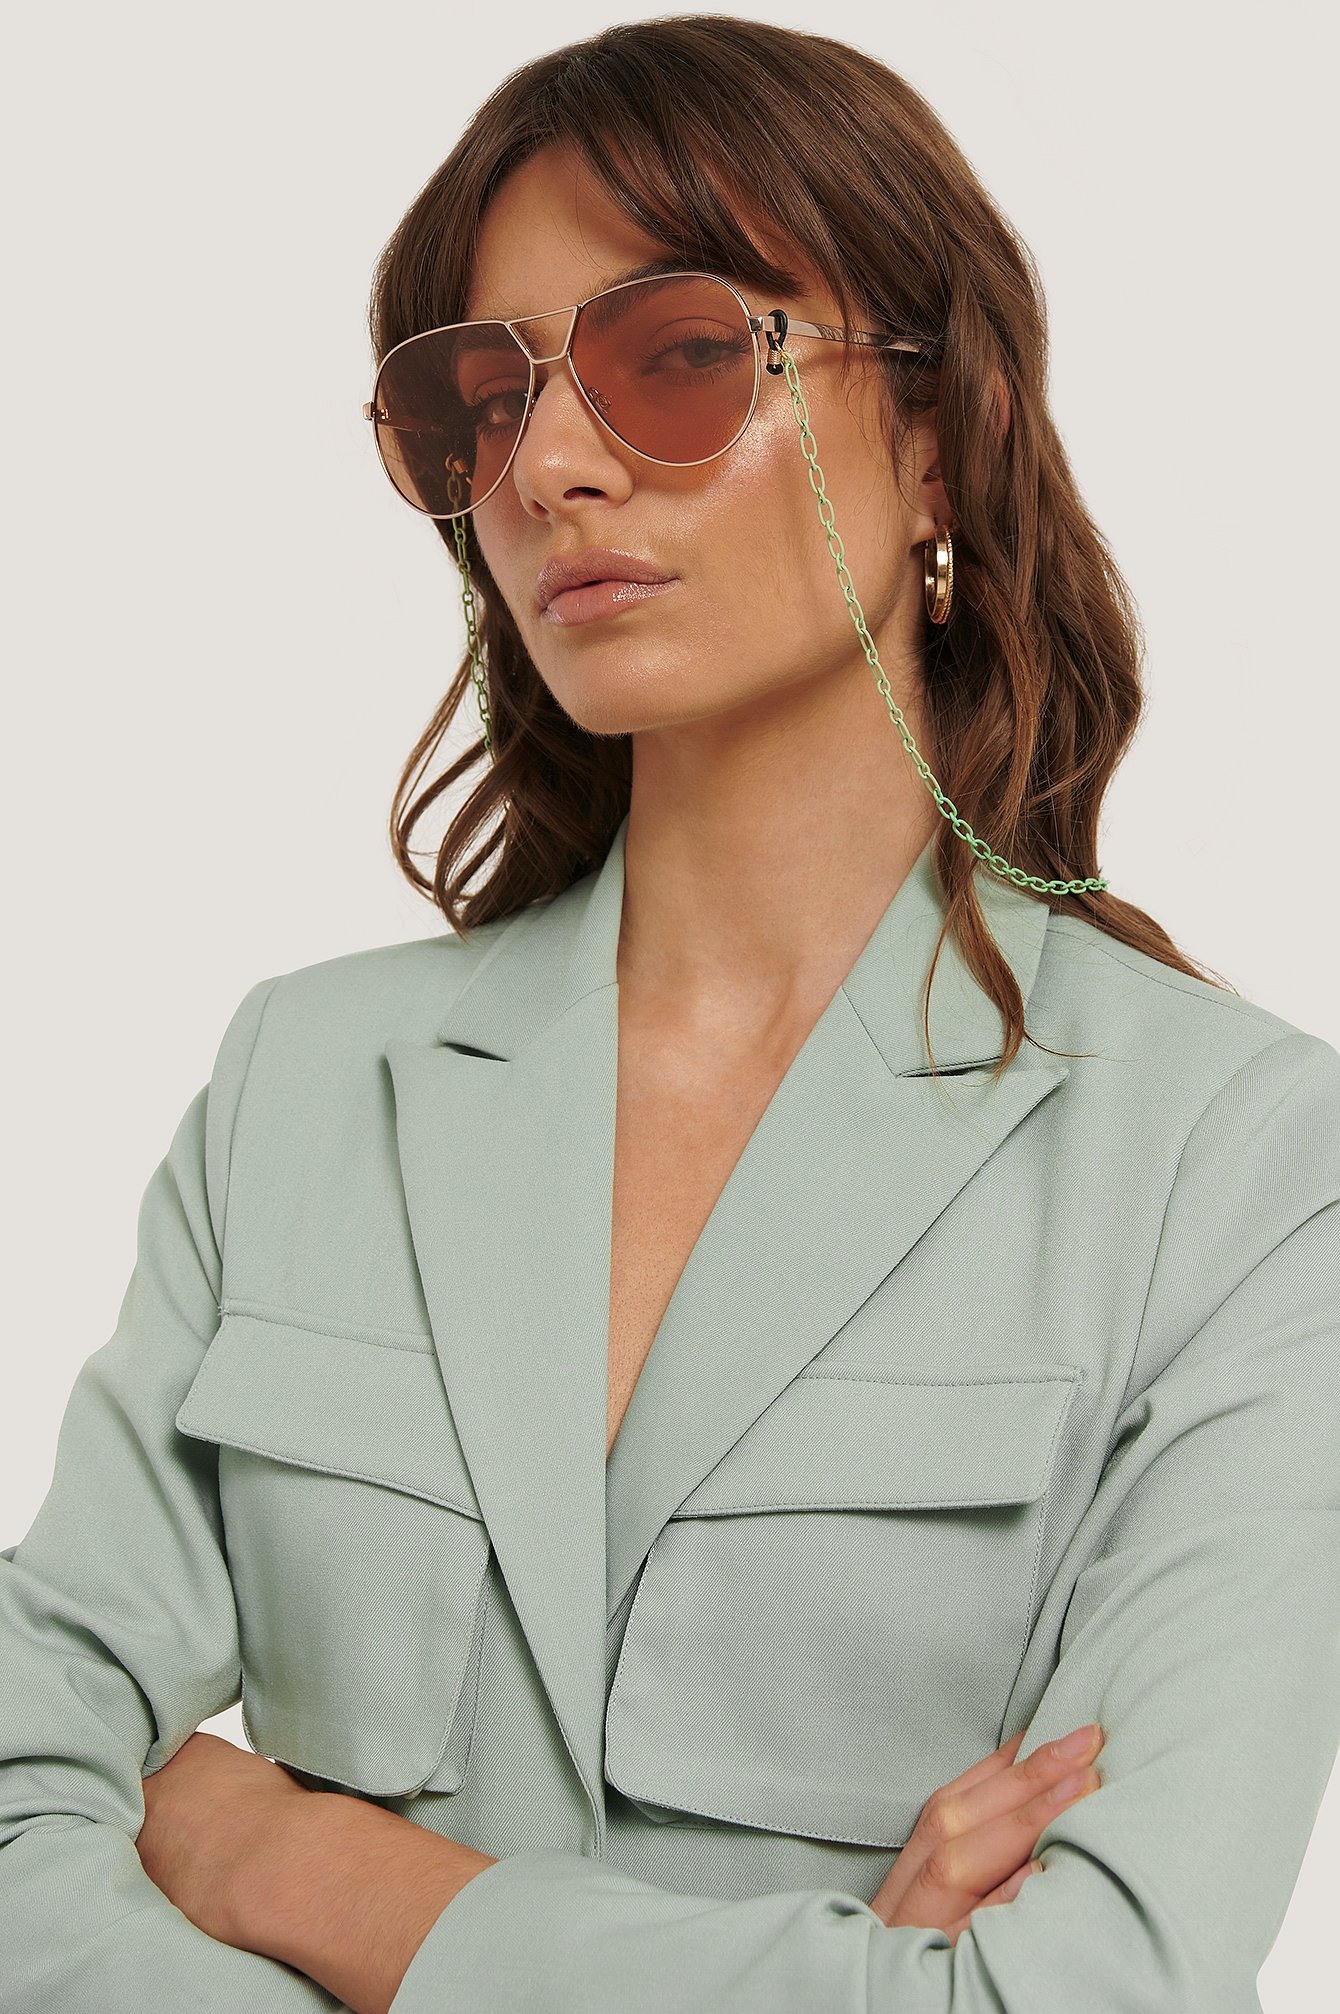 Green Gerolt Sunglasses Chain